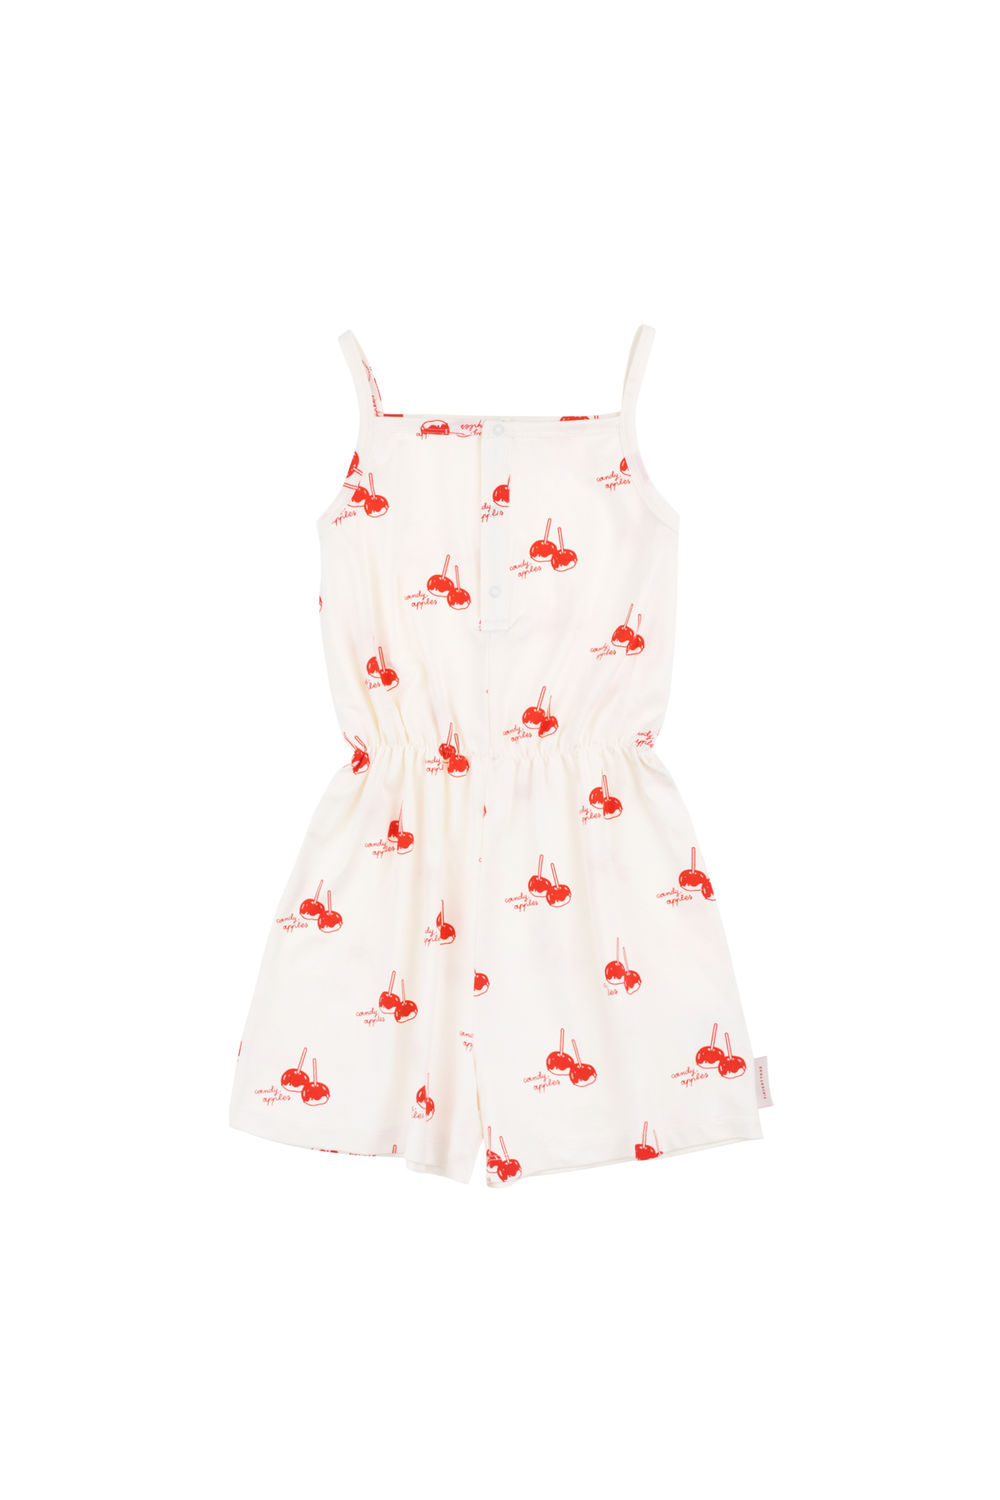 TINY COTTONS, CANDYAPPLES ROMPER, WHITE/RED